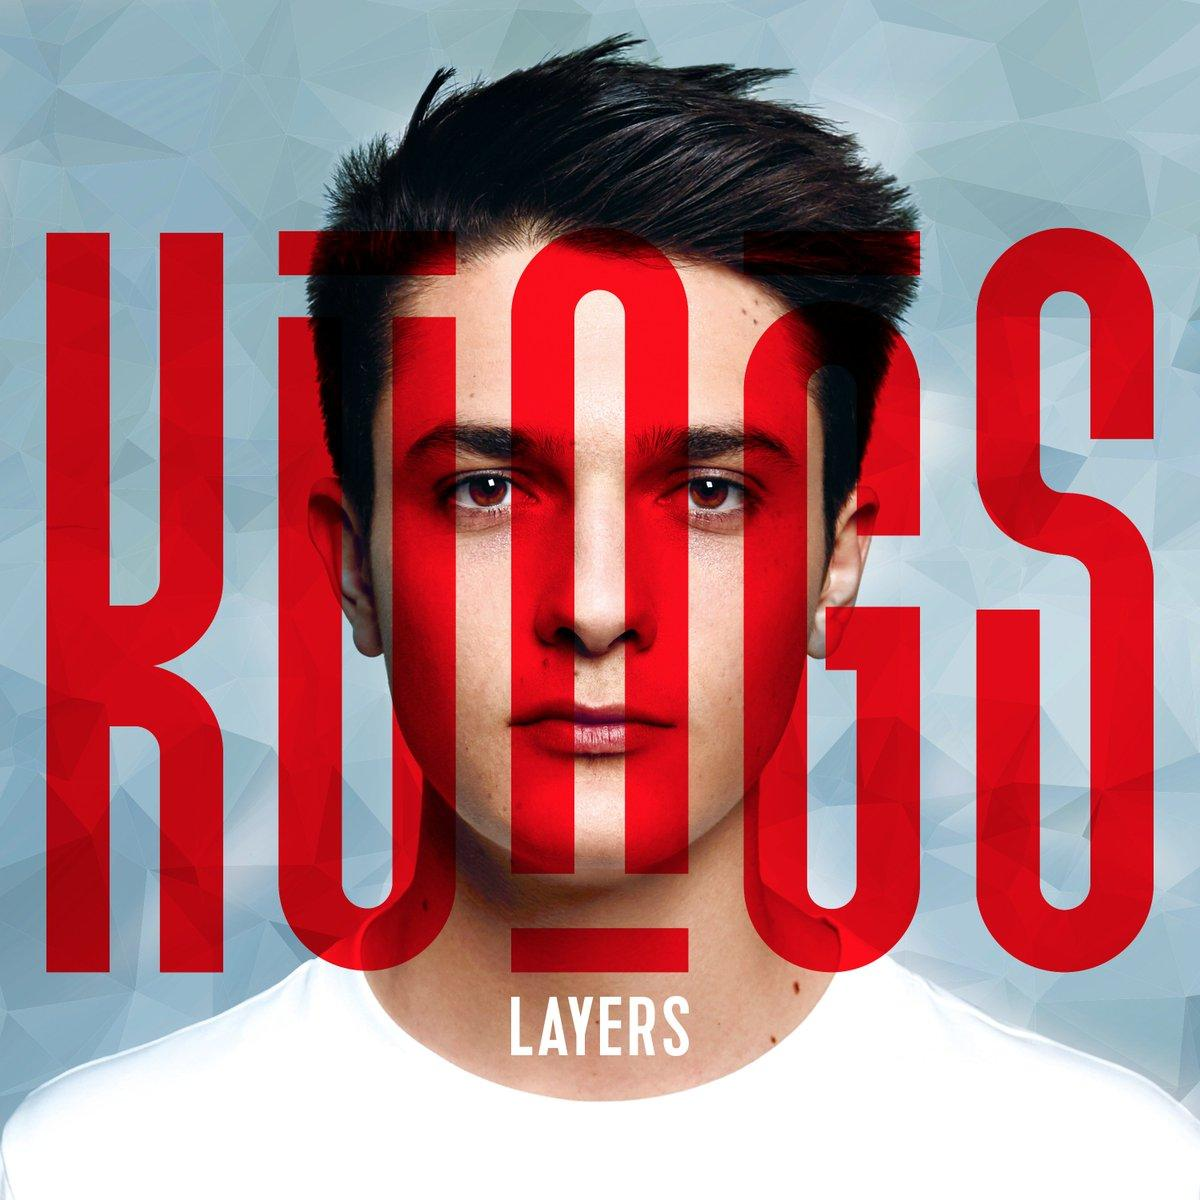 Kungs' album Layers